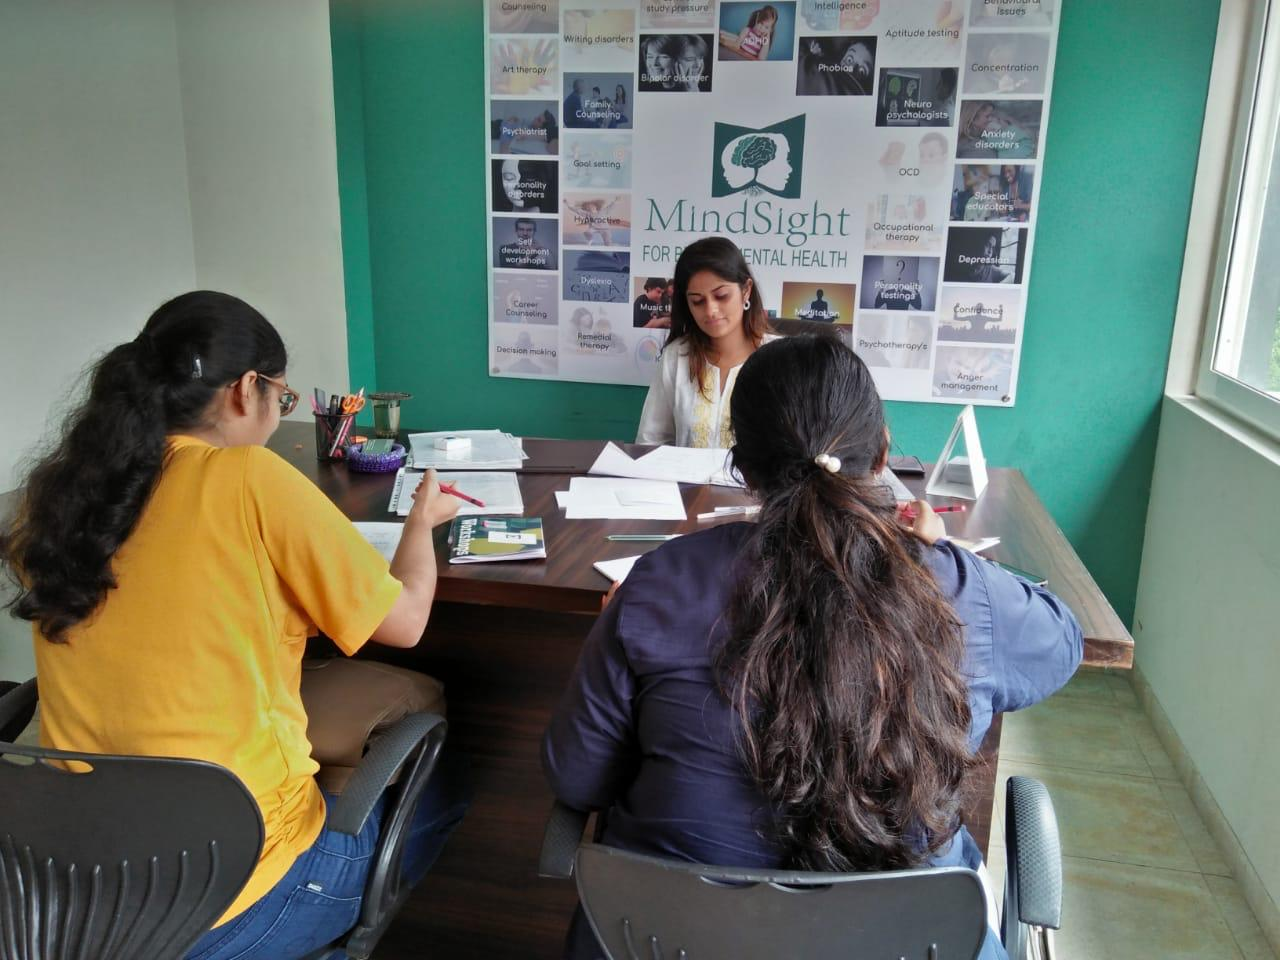 Workshop on Magnet Therapy being supervised by MindSight psychpologists